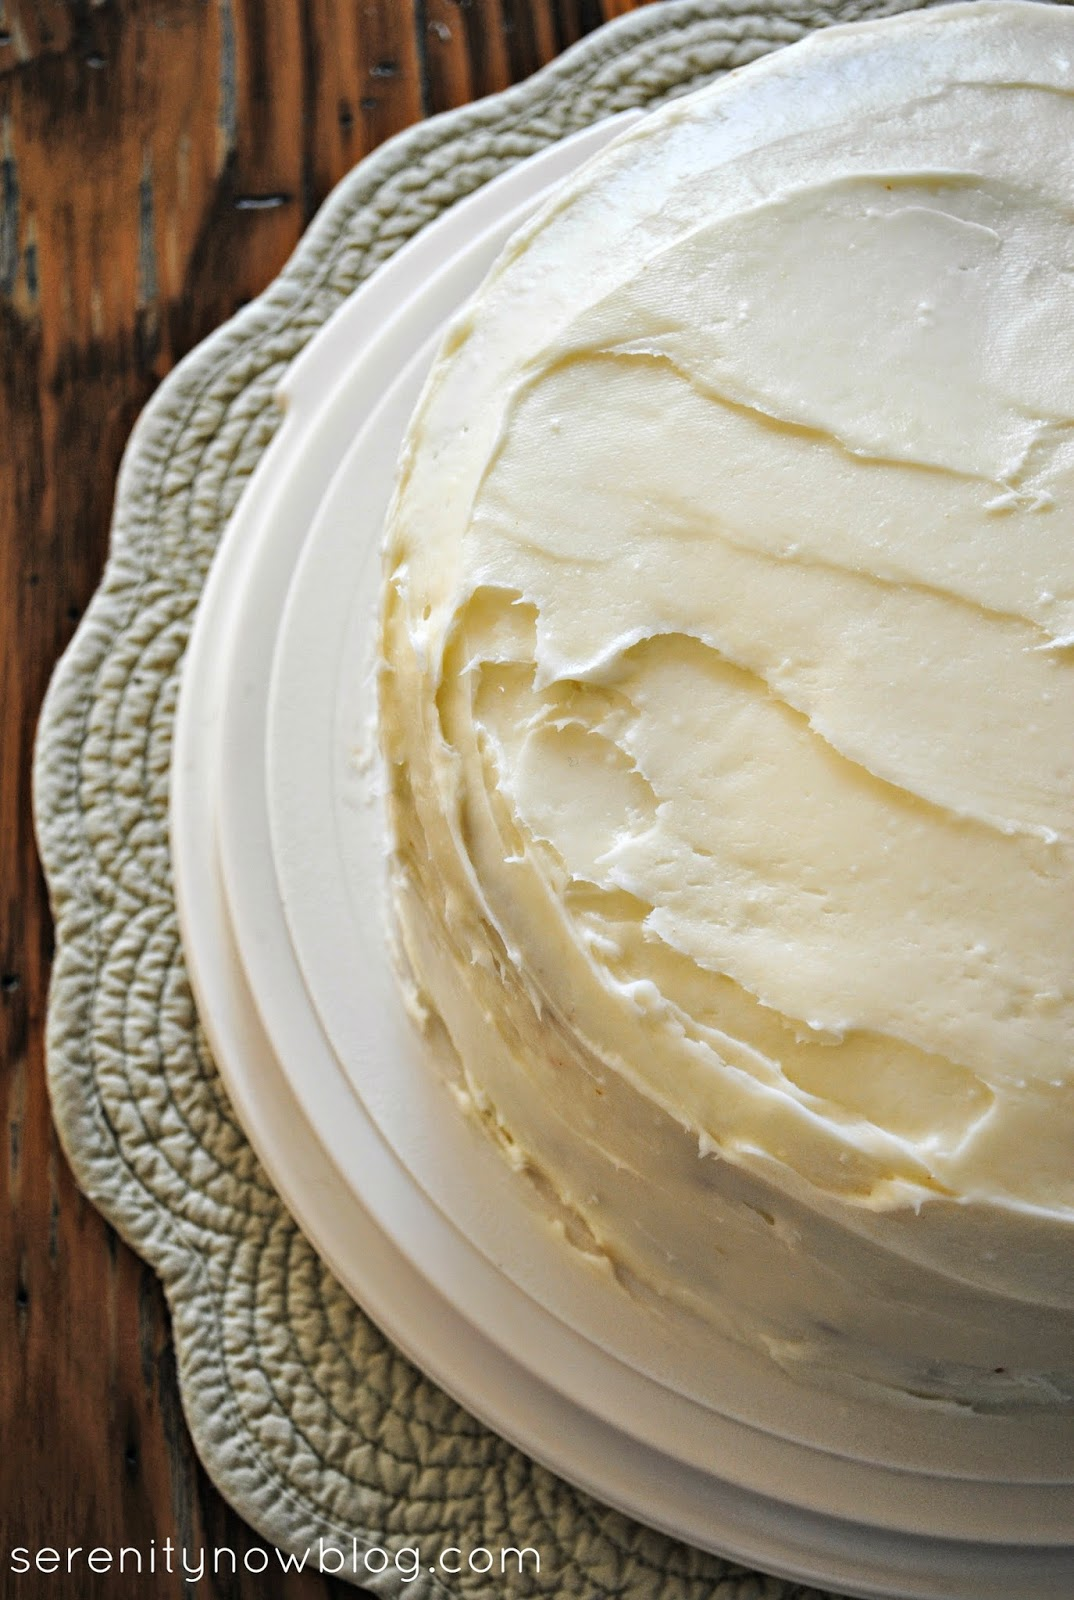 Key Lime Cake with homemade Cream Cheese Frosting, from Serenity Now